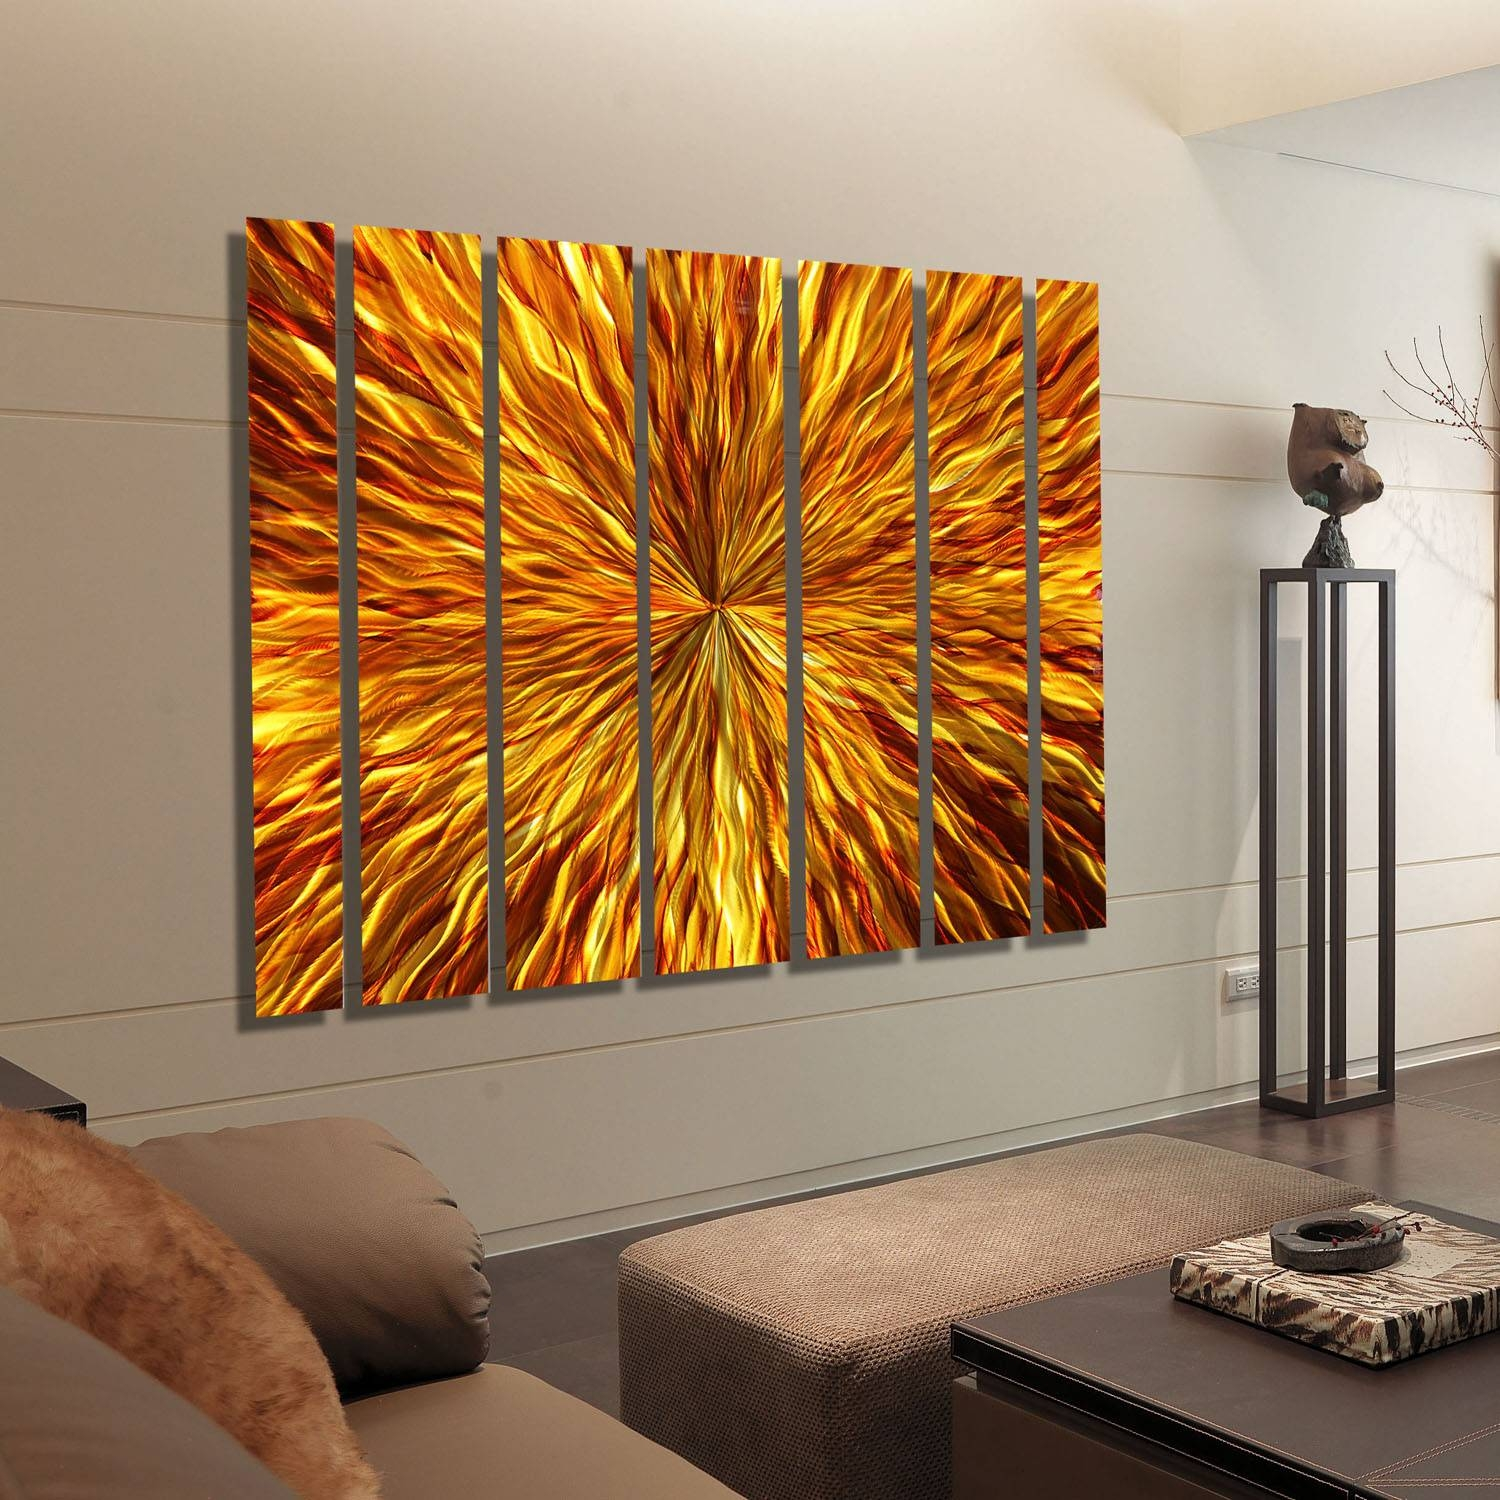 Amber Vortex Xl – Extra Large Modern Metal Wall Artjon Allen In Most Current Abstract Metal Wall Art (View 12 of 20)